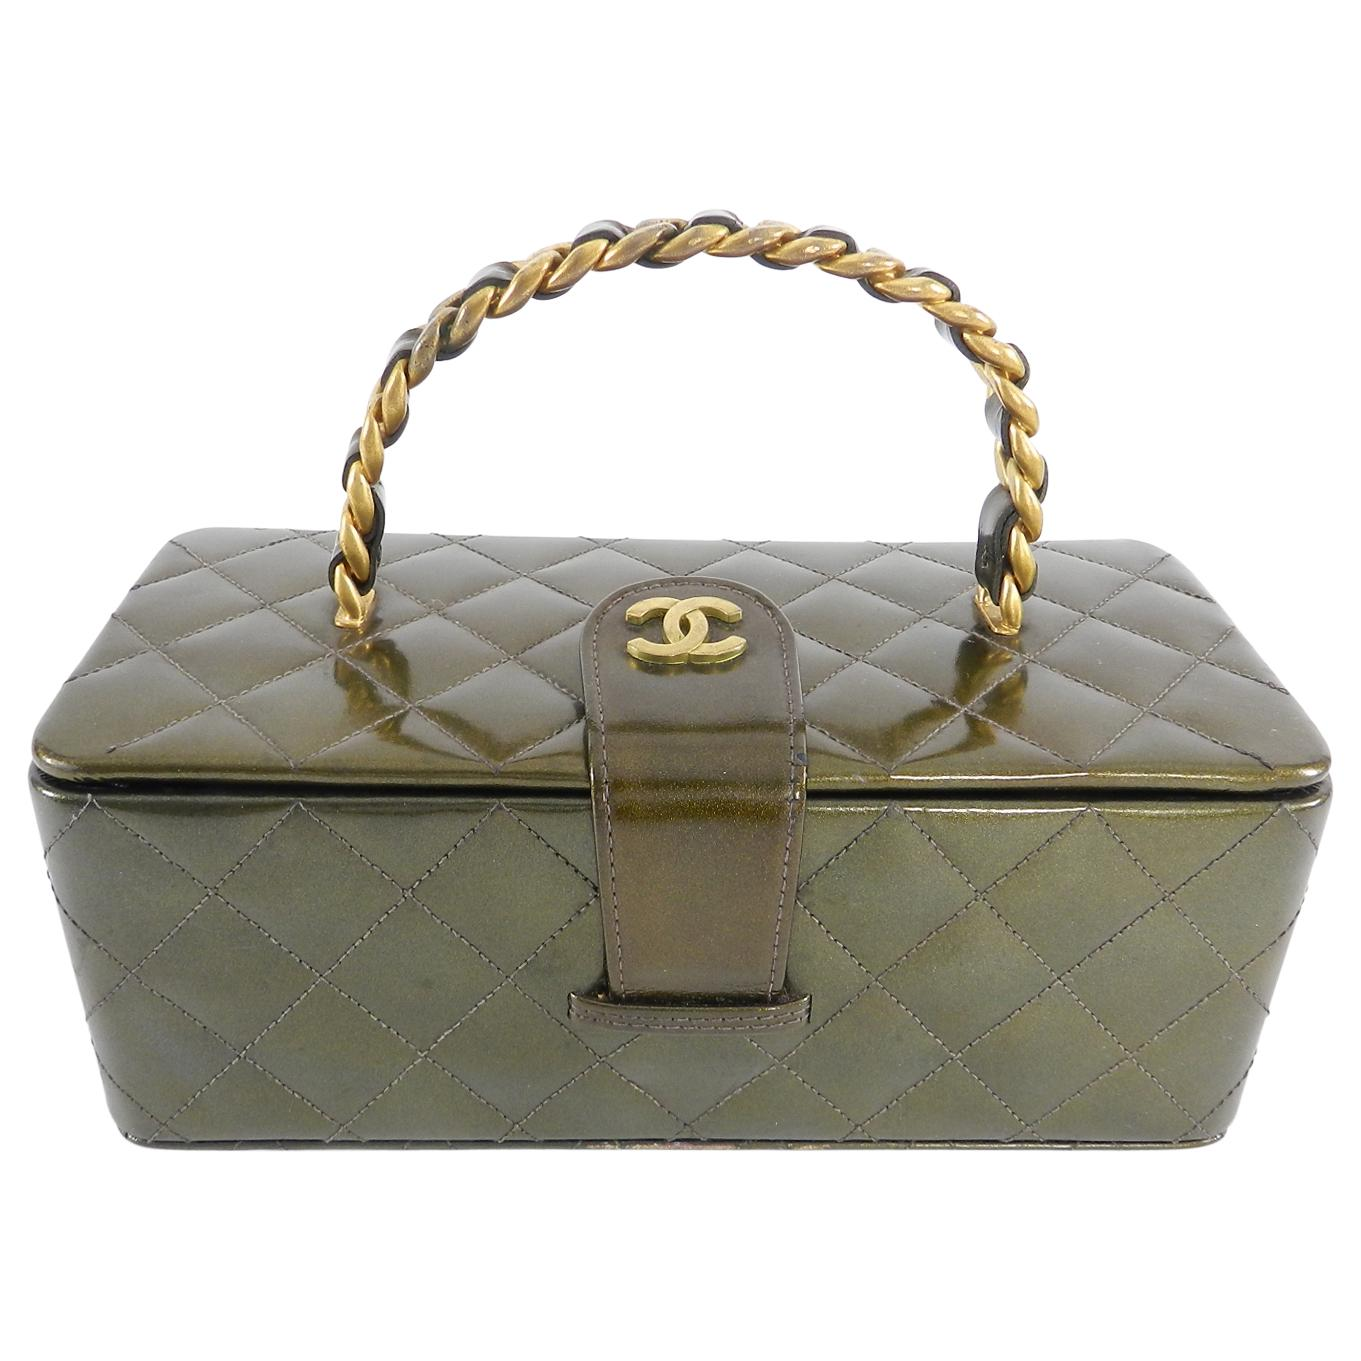 bda3a211cb25 Vintage Chanel Novelty Bags - 73 For Sale at 1stdibs